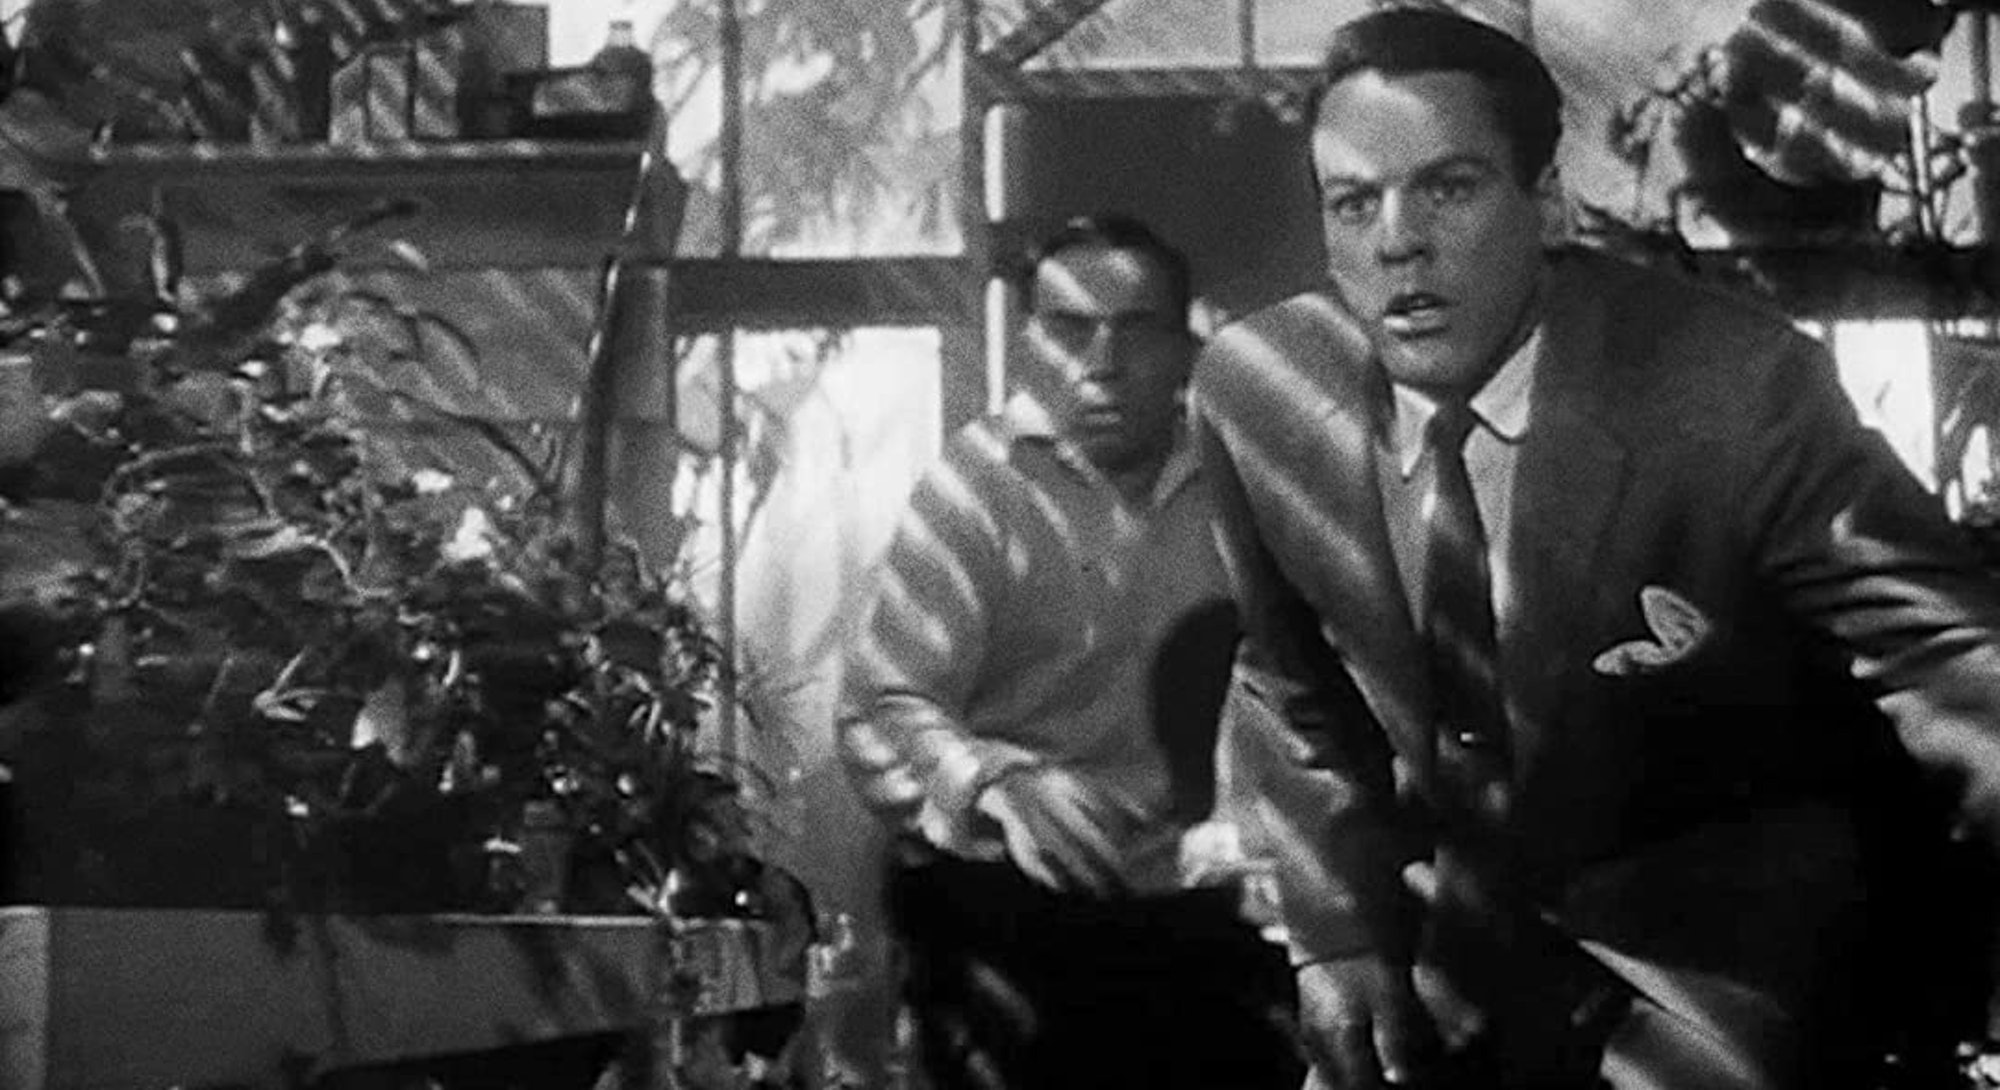 kevin mccarthy in greenhouse looking scared from invasion of the body snatchers